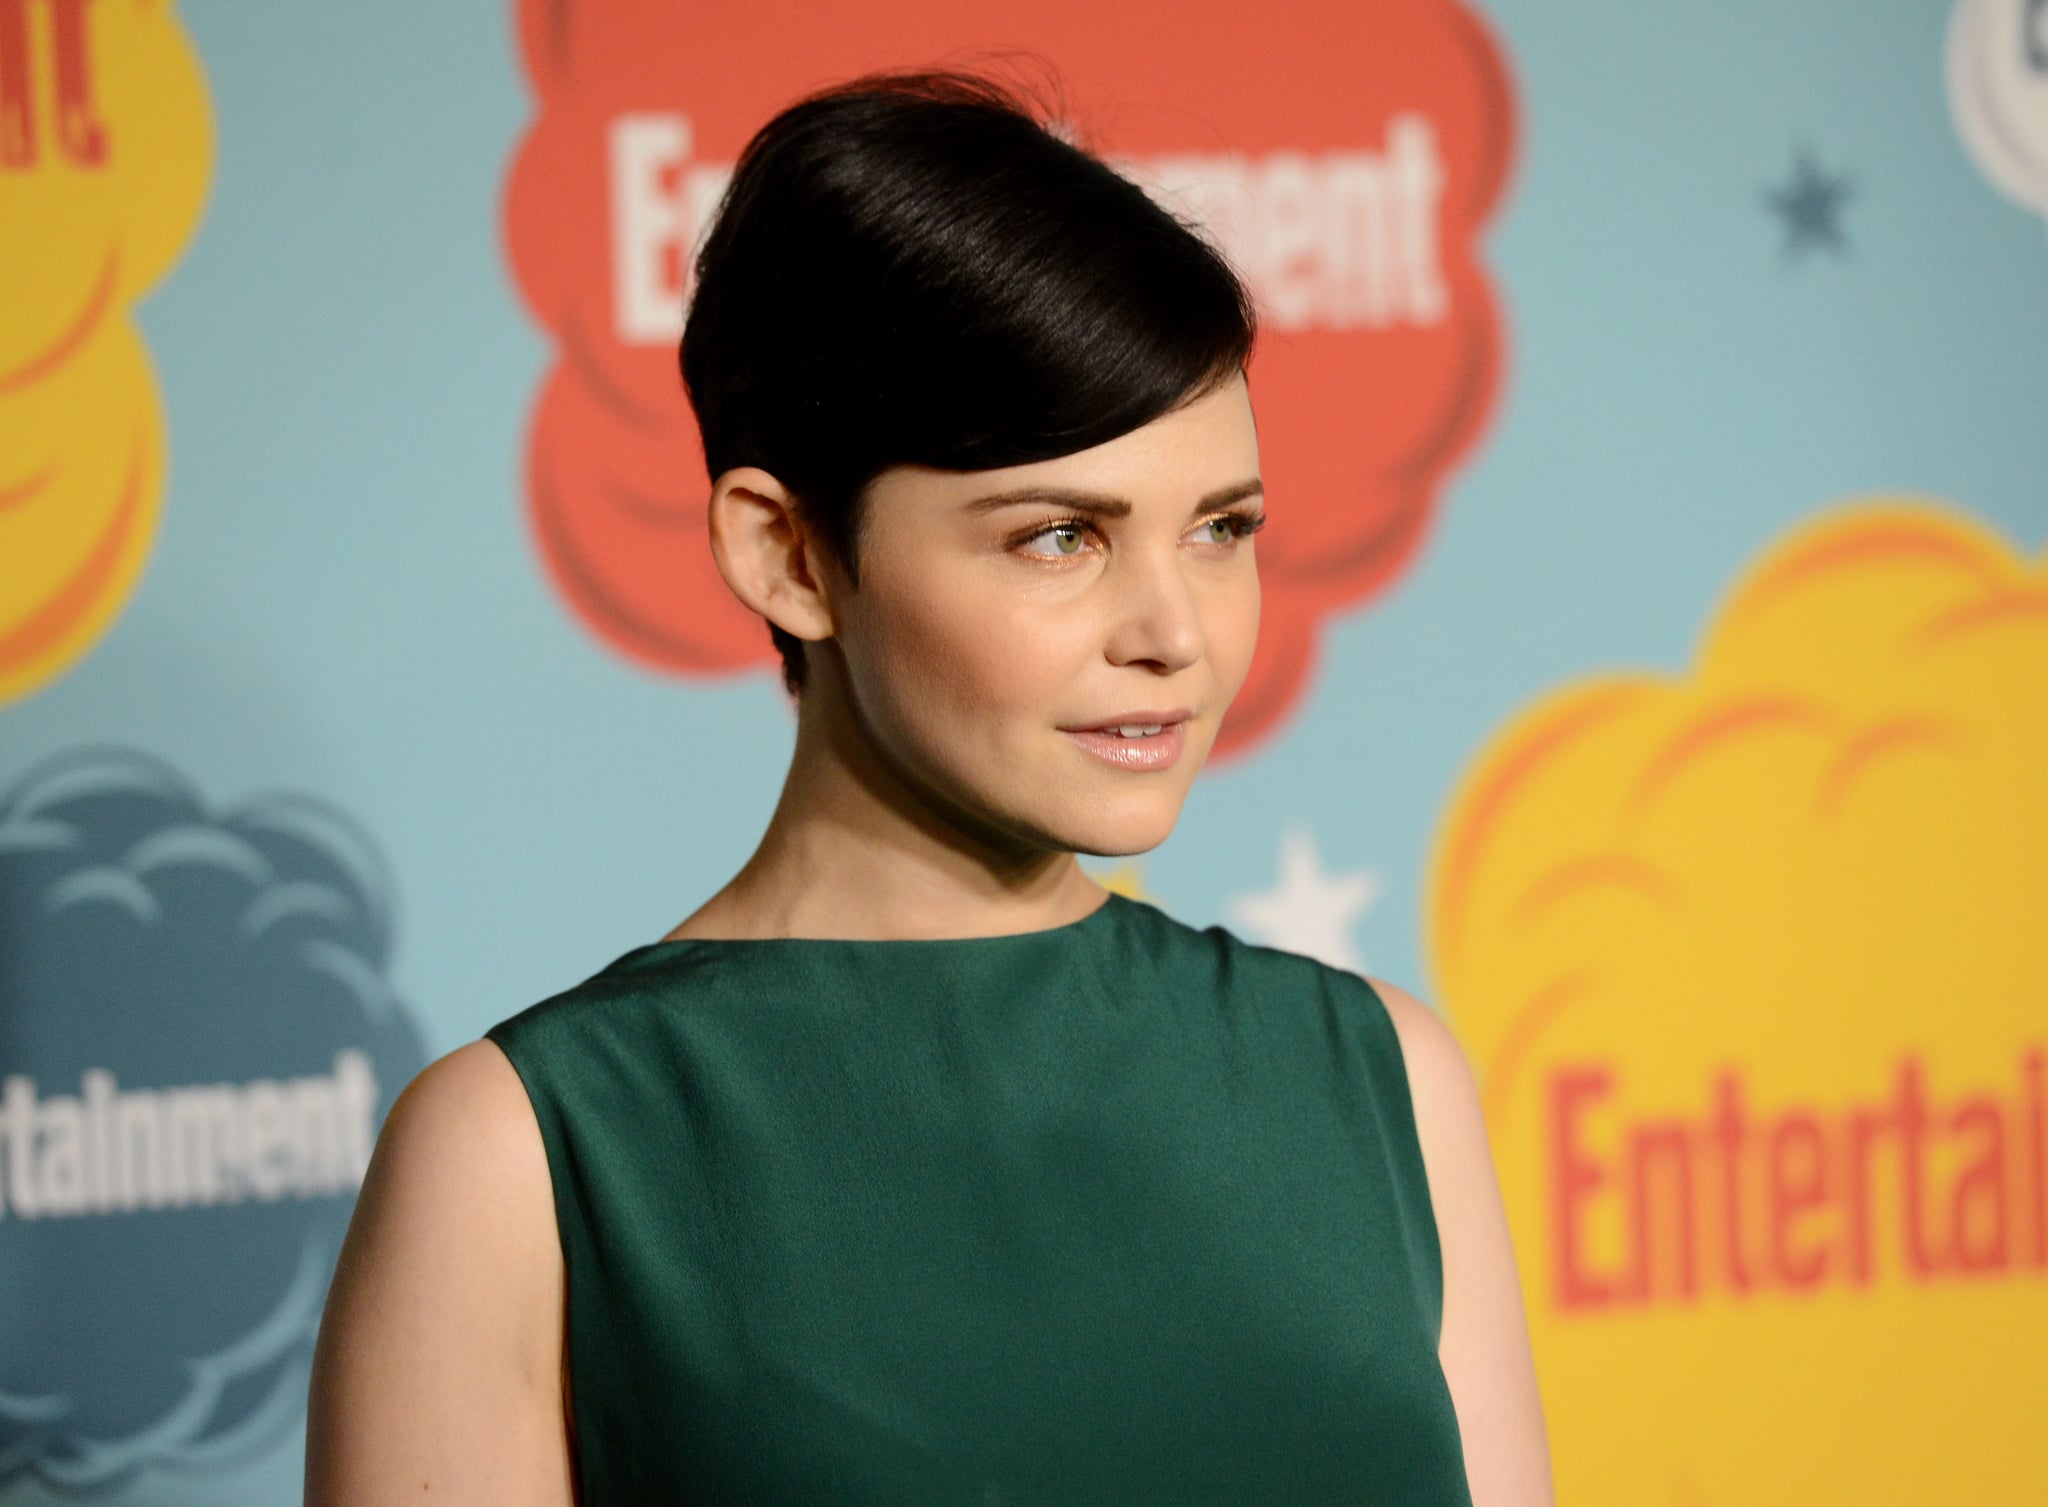 With gilded eye shadow and a '60s bouffant, Ginnifer Goodwin was full-on vintage vixen at Entertainment Weekly's annual Comic-Con Celebration.